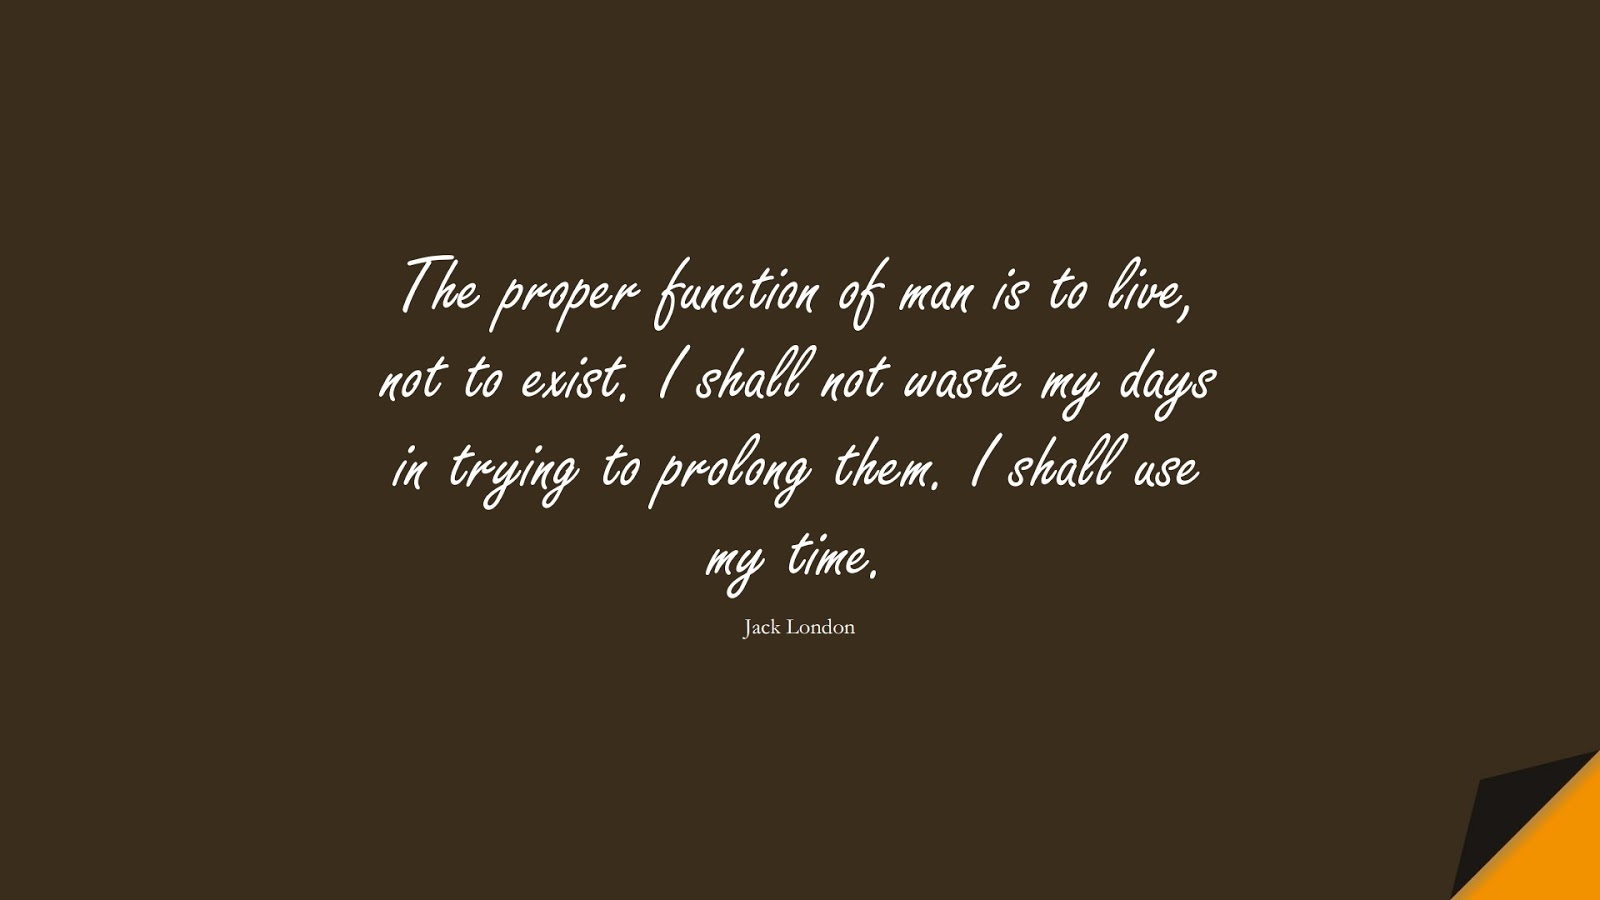 The proper function of man is to live, not to exist. I shall not waste my days in trying to prolong them. I shall use my time. (Jack London);  #InspirationalQuotes